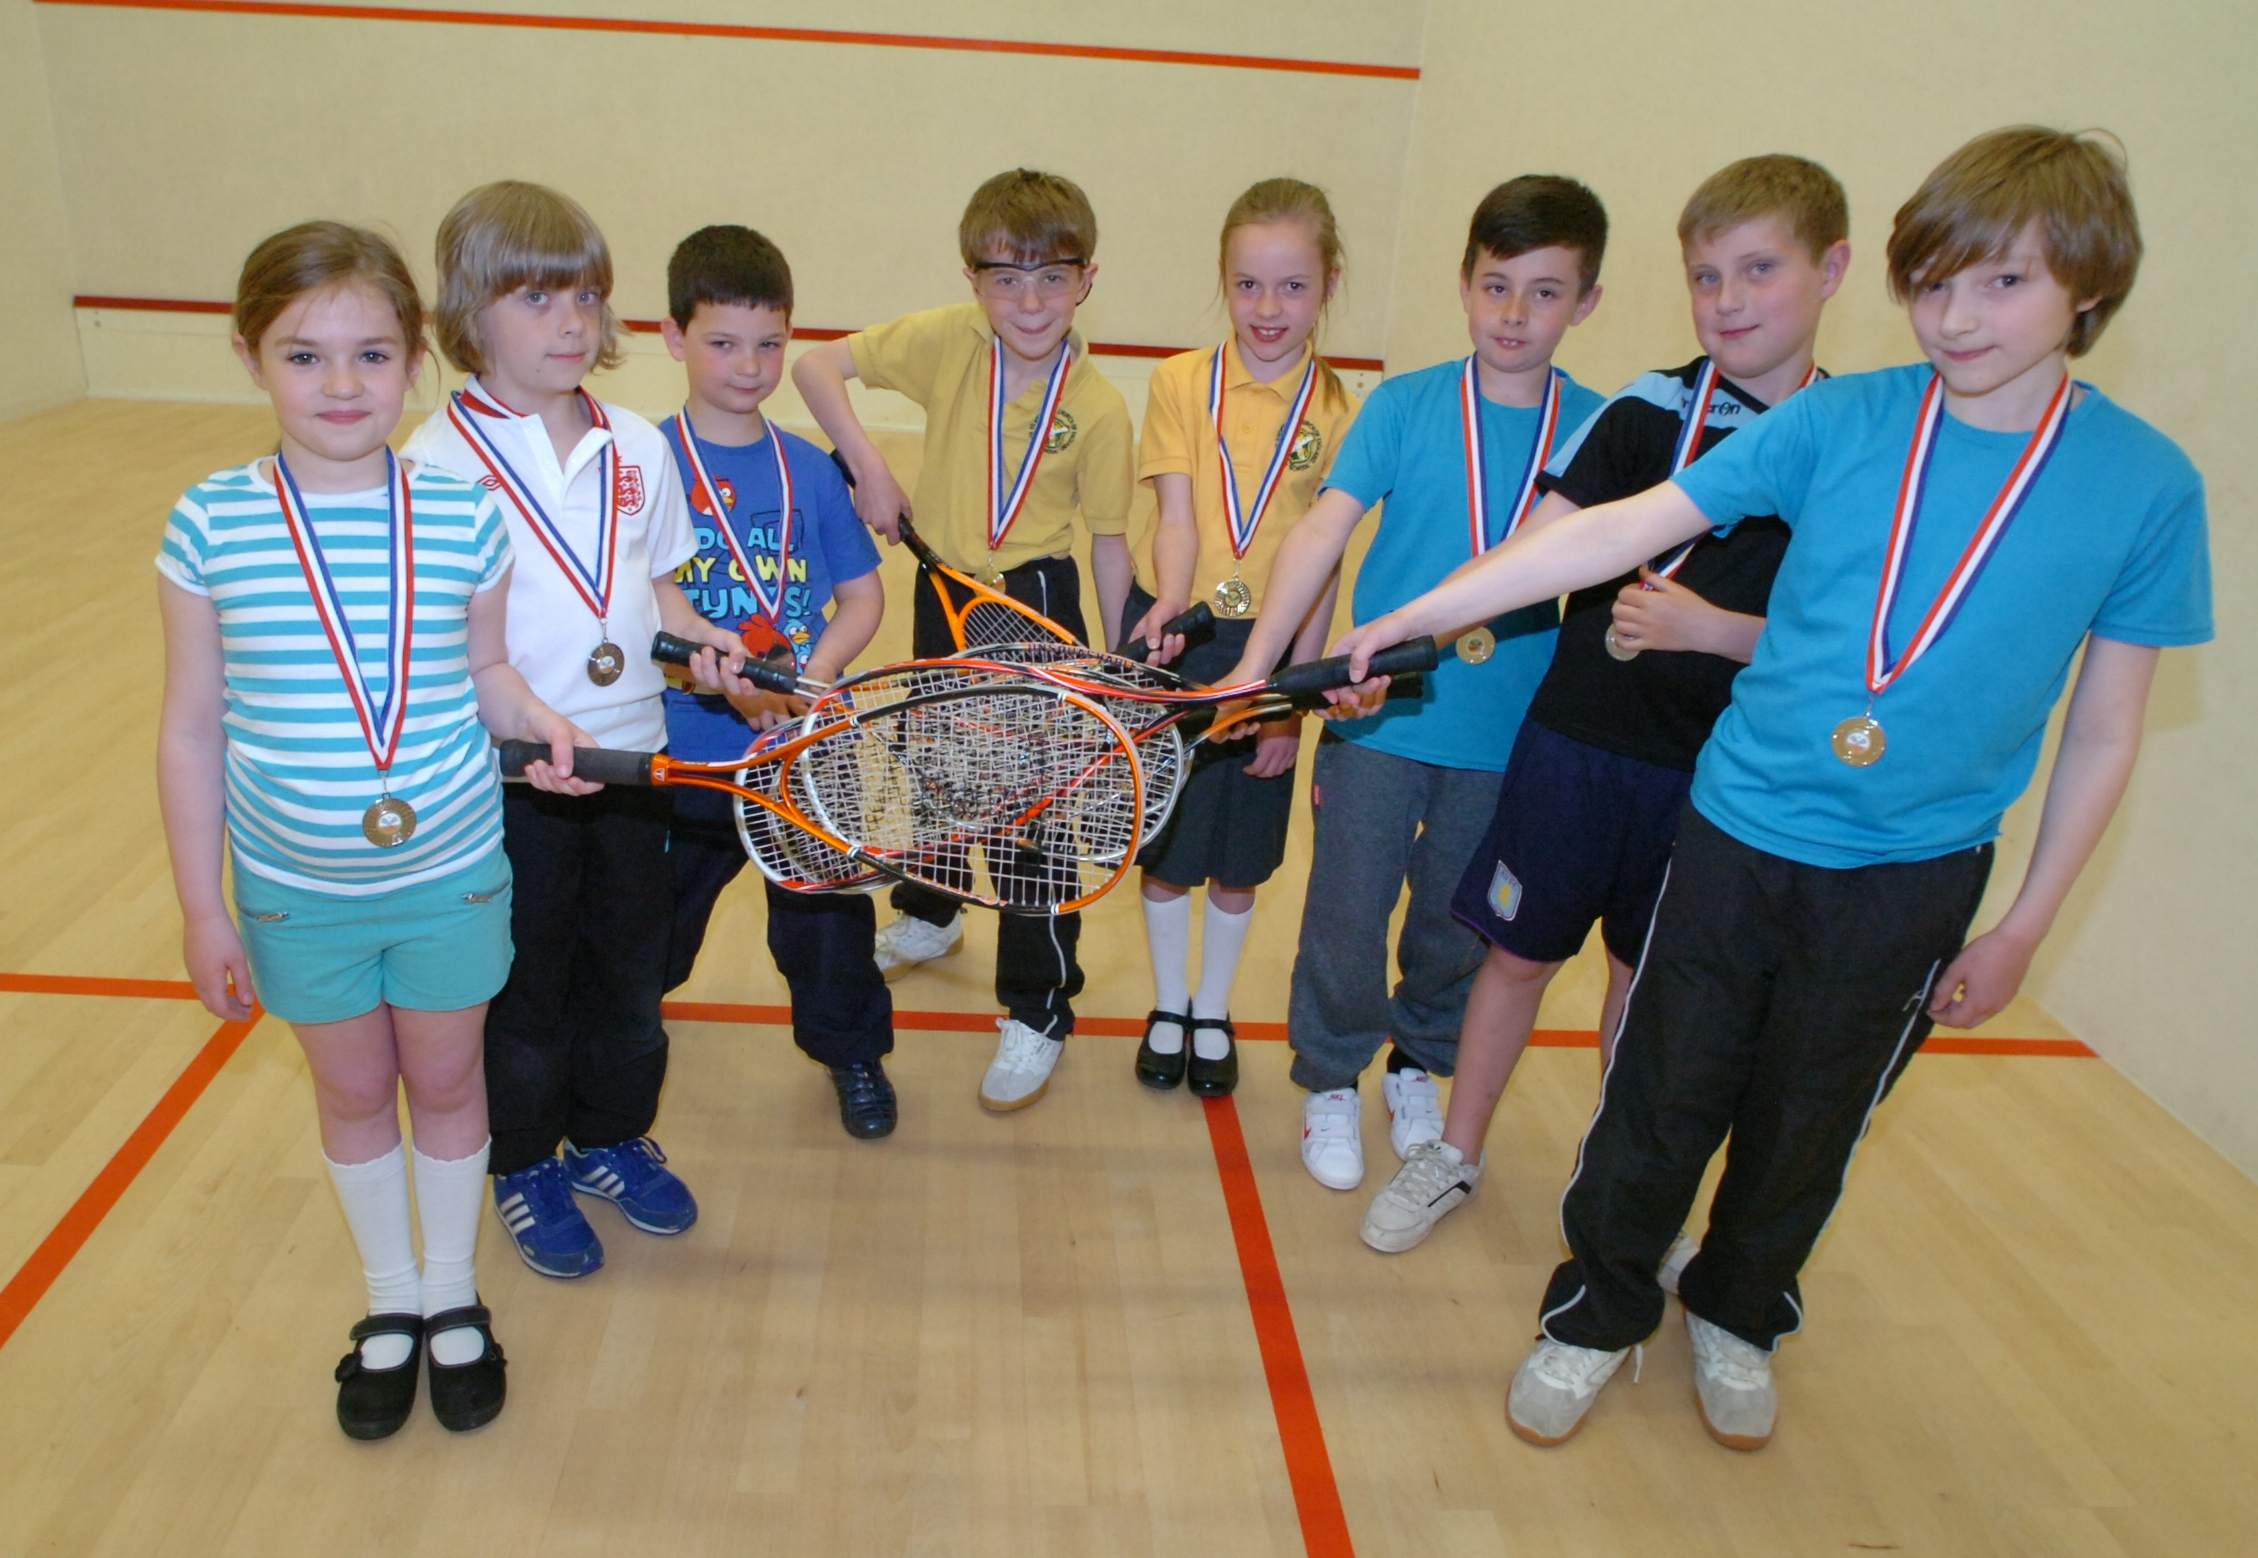 Pupils from St Andrews First School savour winning their tournament. Picture: MARIE MYERS